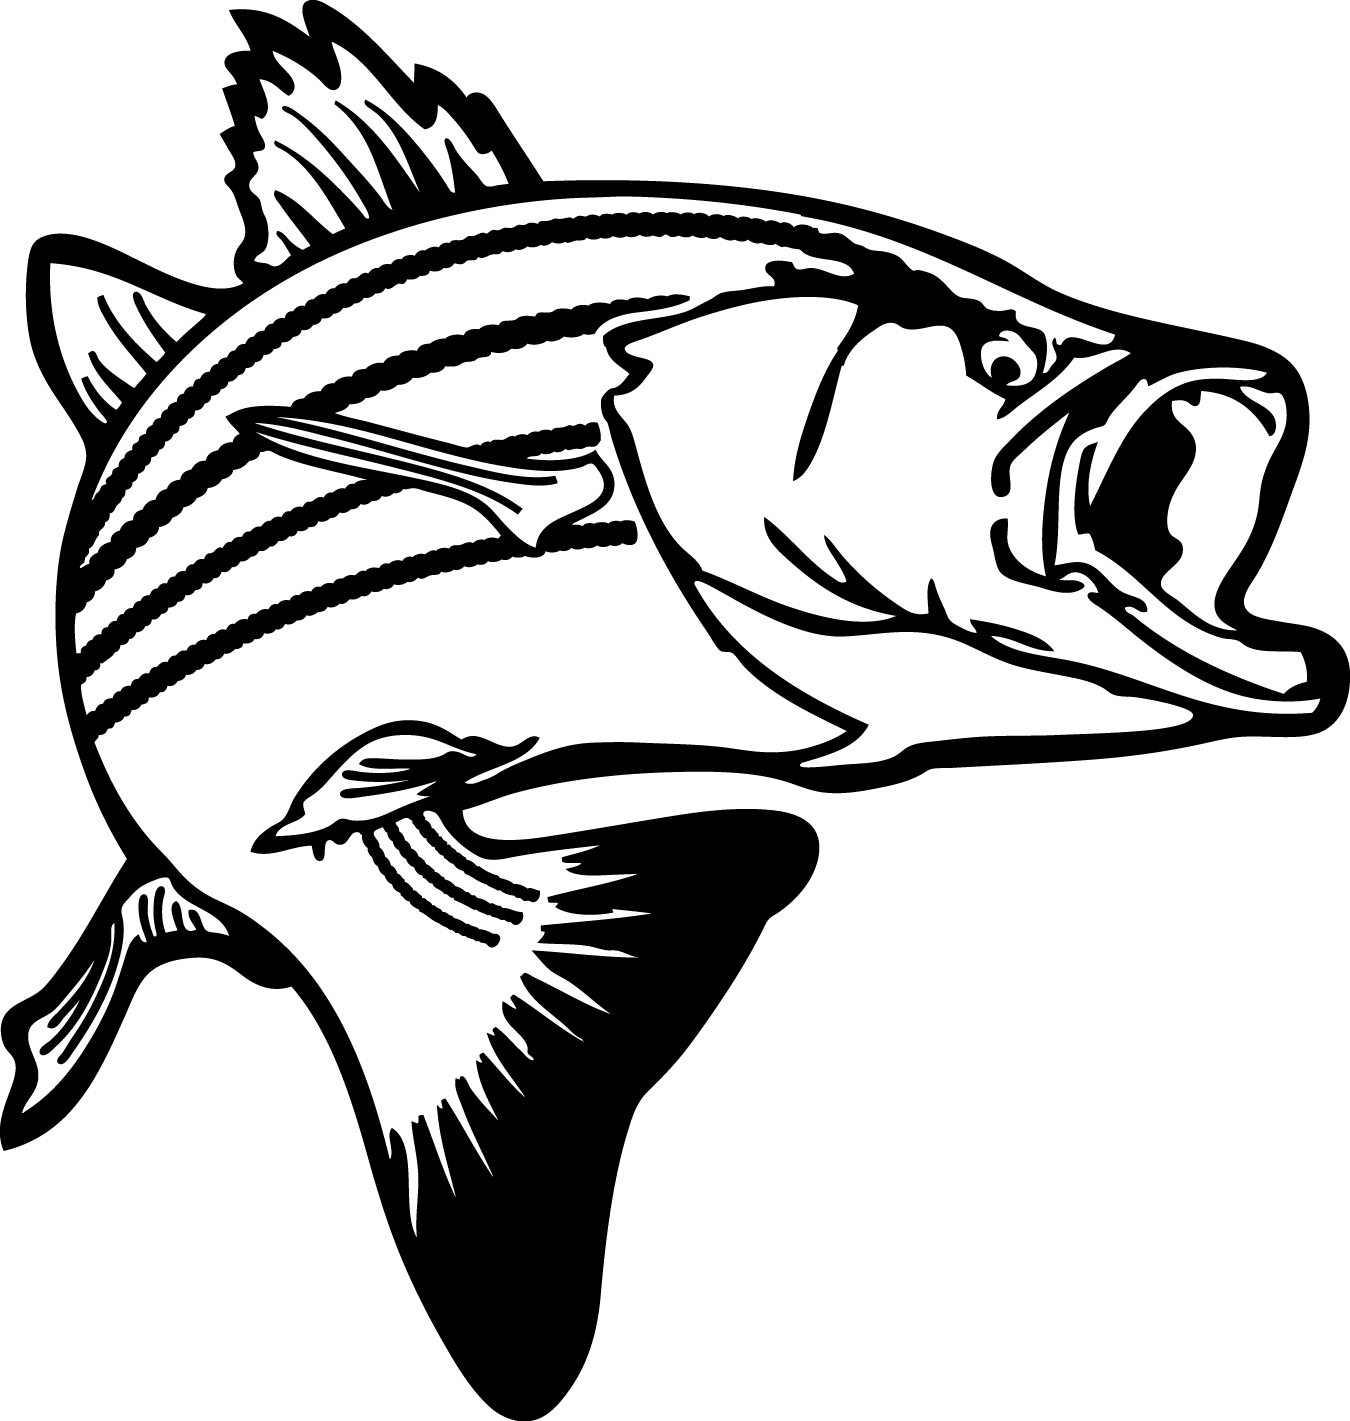 fish clipart drawing - photo #45